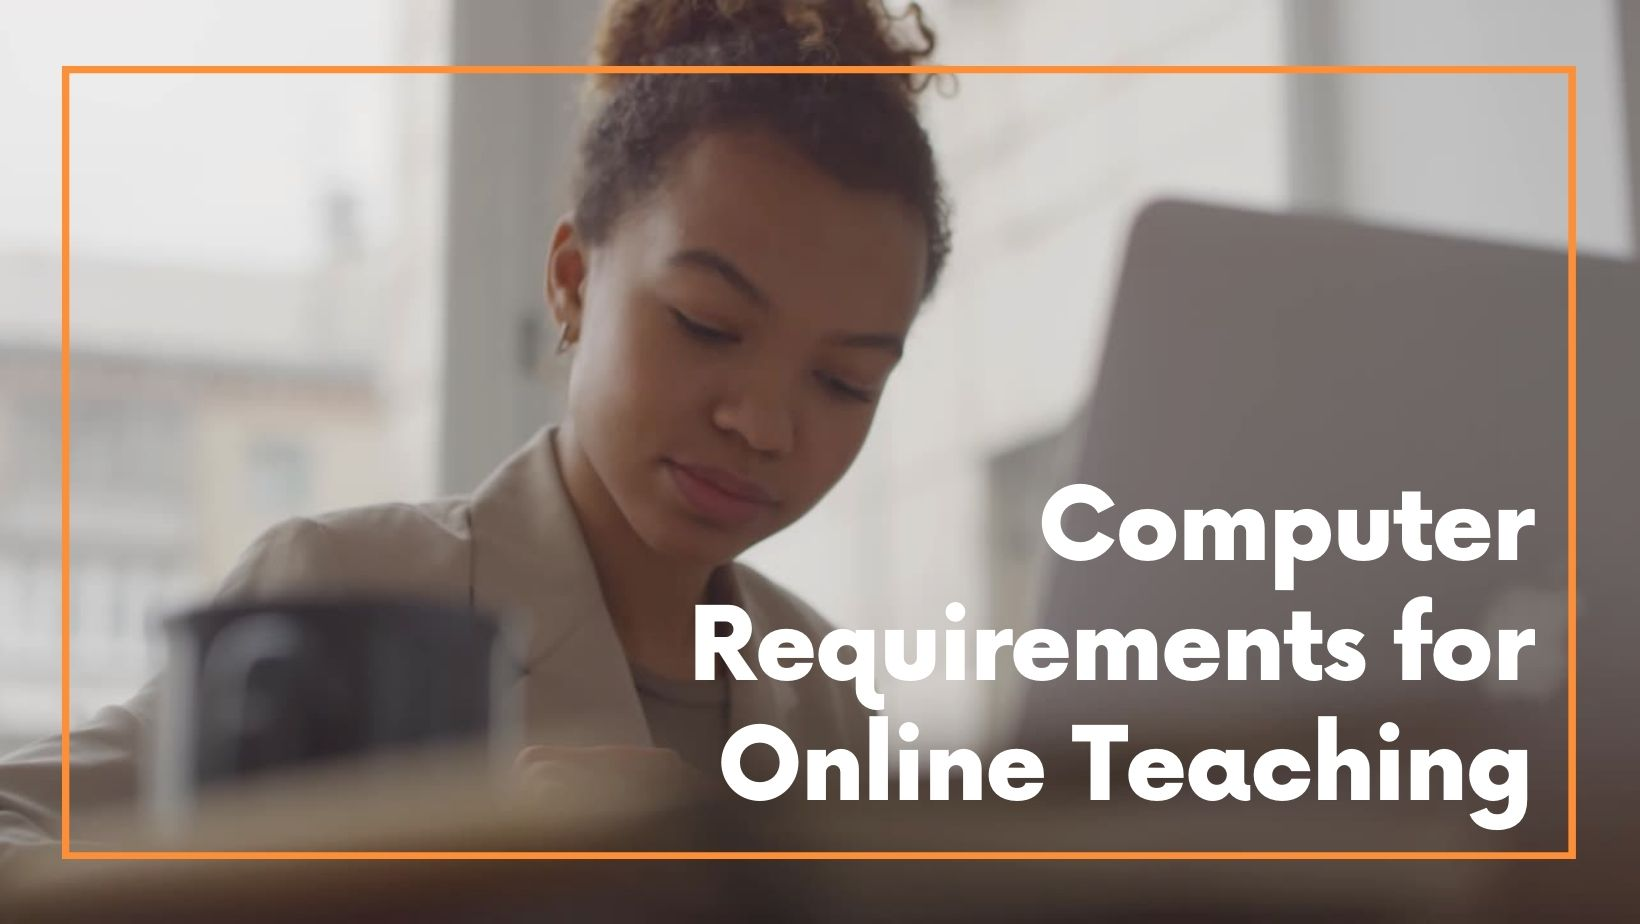 Computer Requirements for Online Teaching